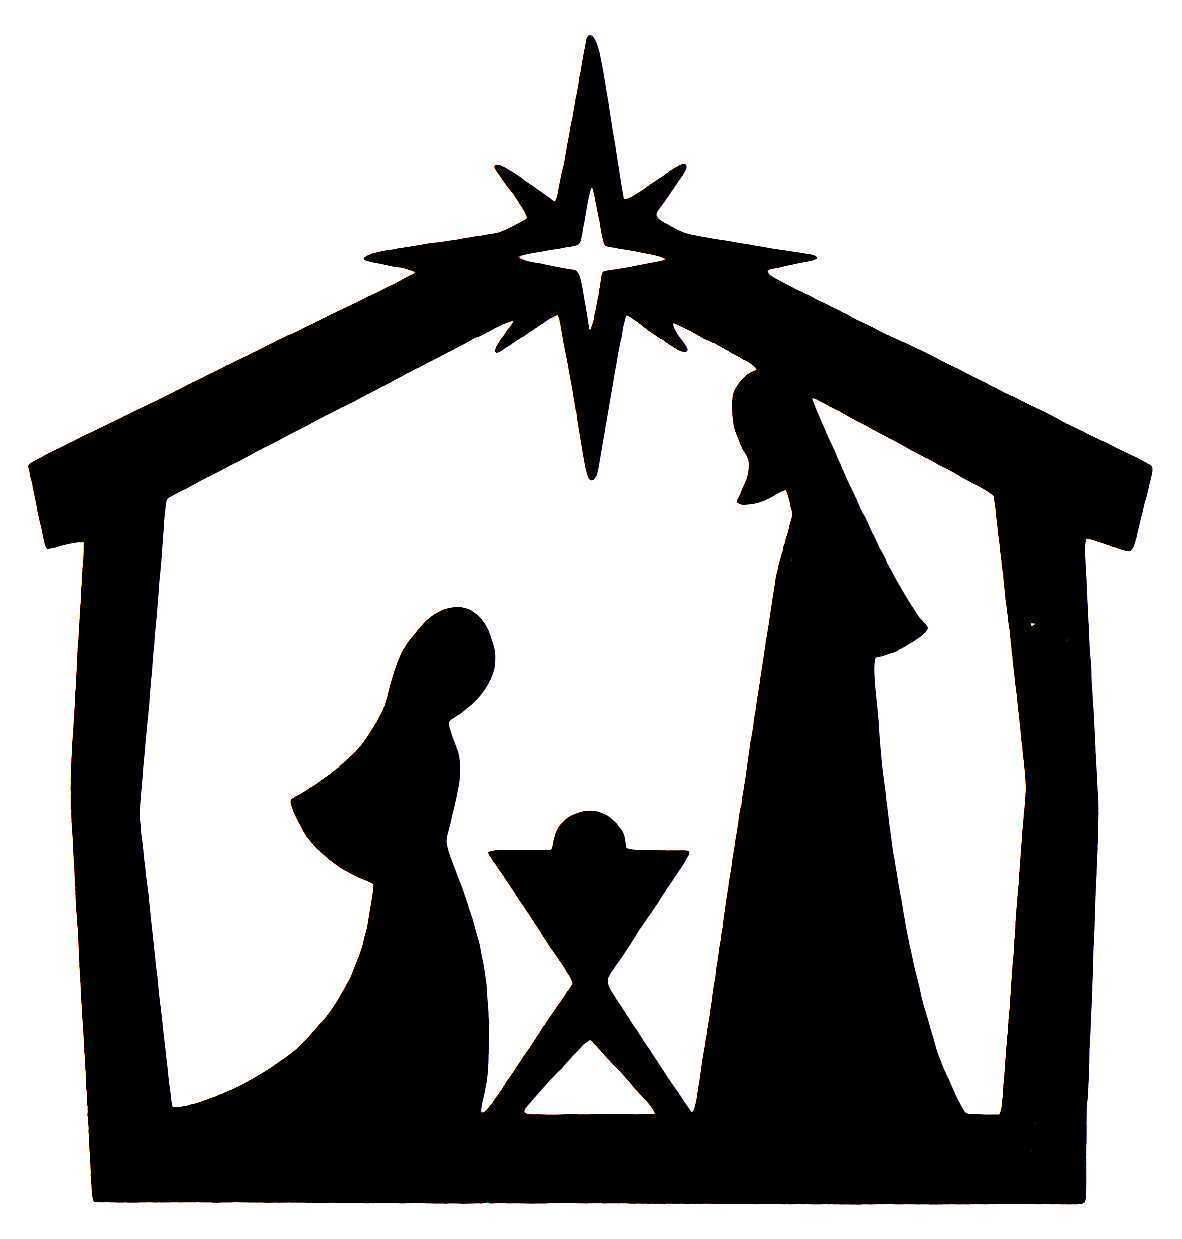 Black And White Nativity Silhouette At Nativity Silhouette Nativity Scene Silhouette Silhouette Christmas